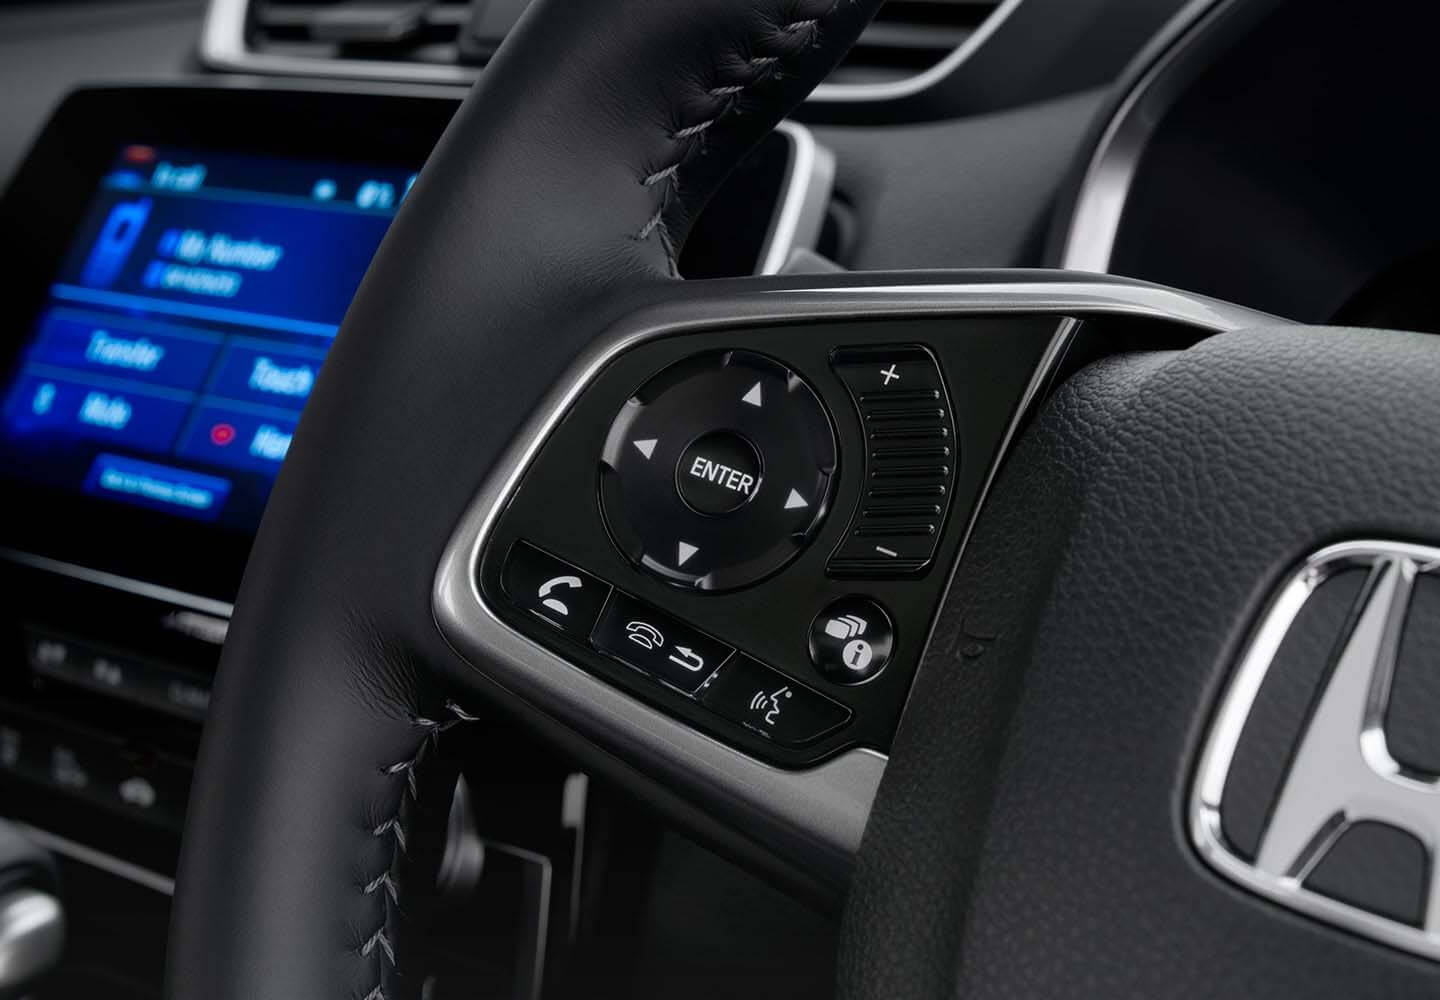 CR-V Steering Wheel Mounted Controls